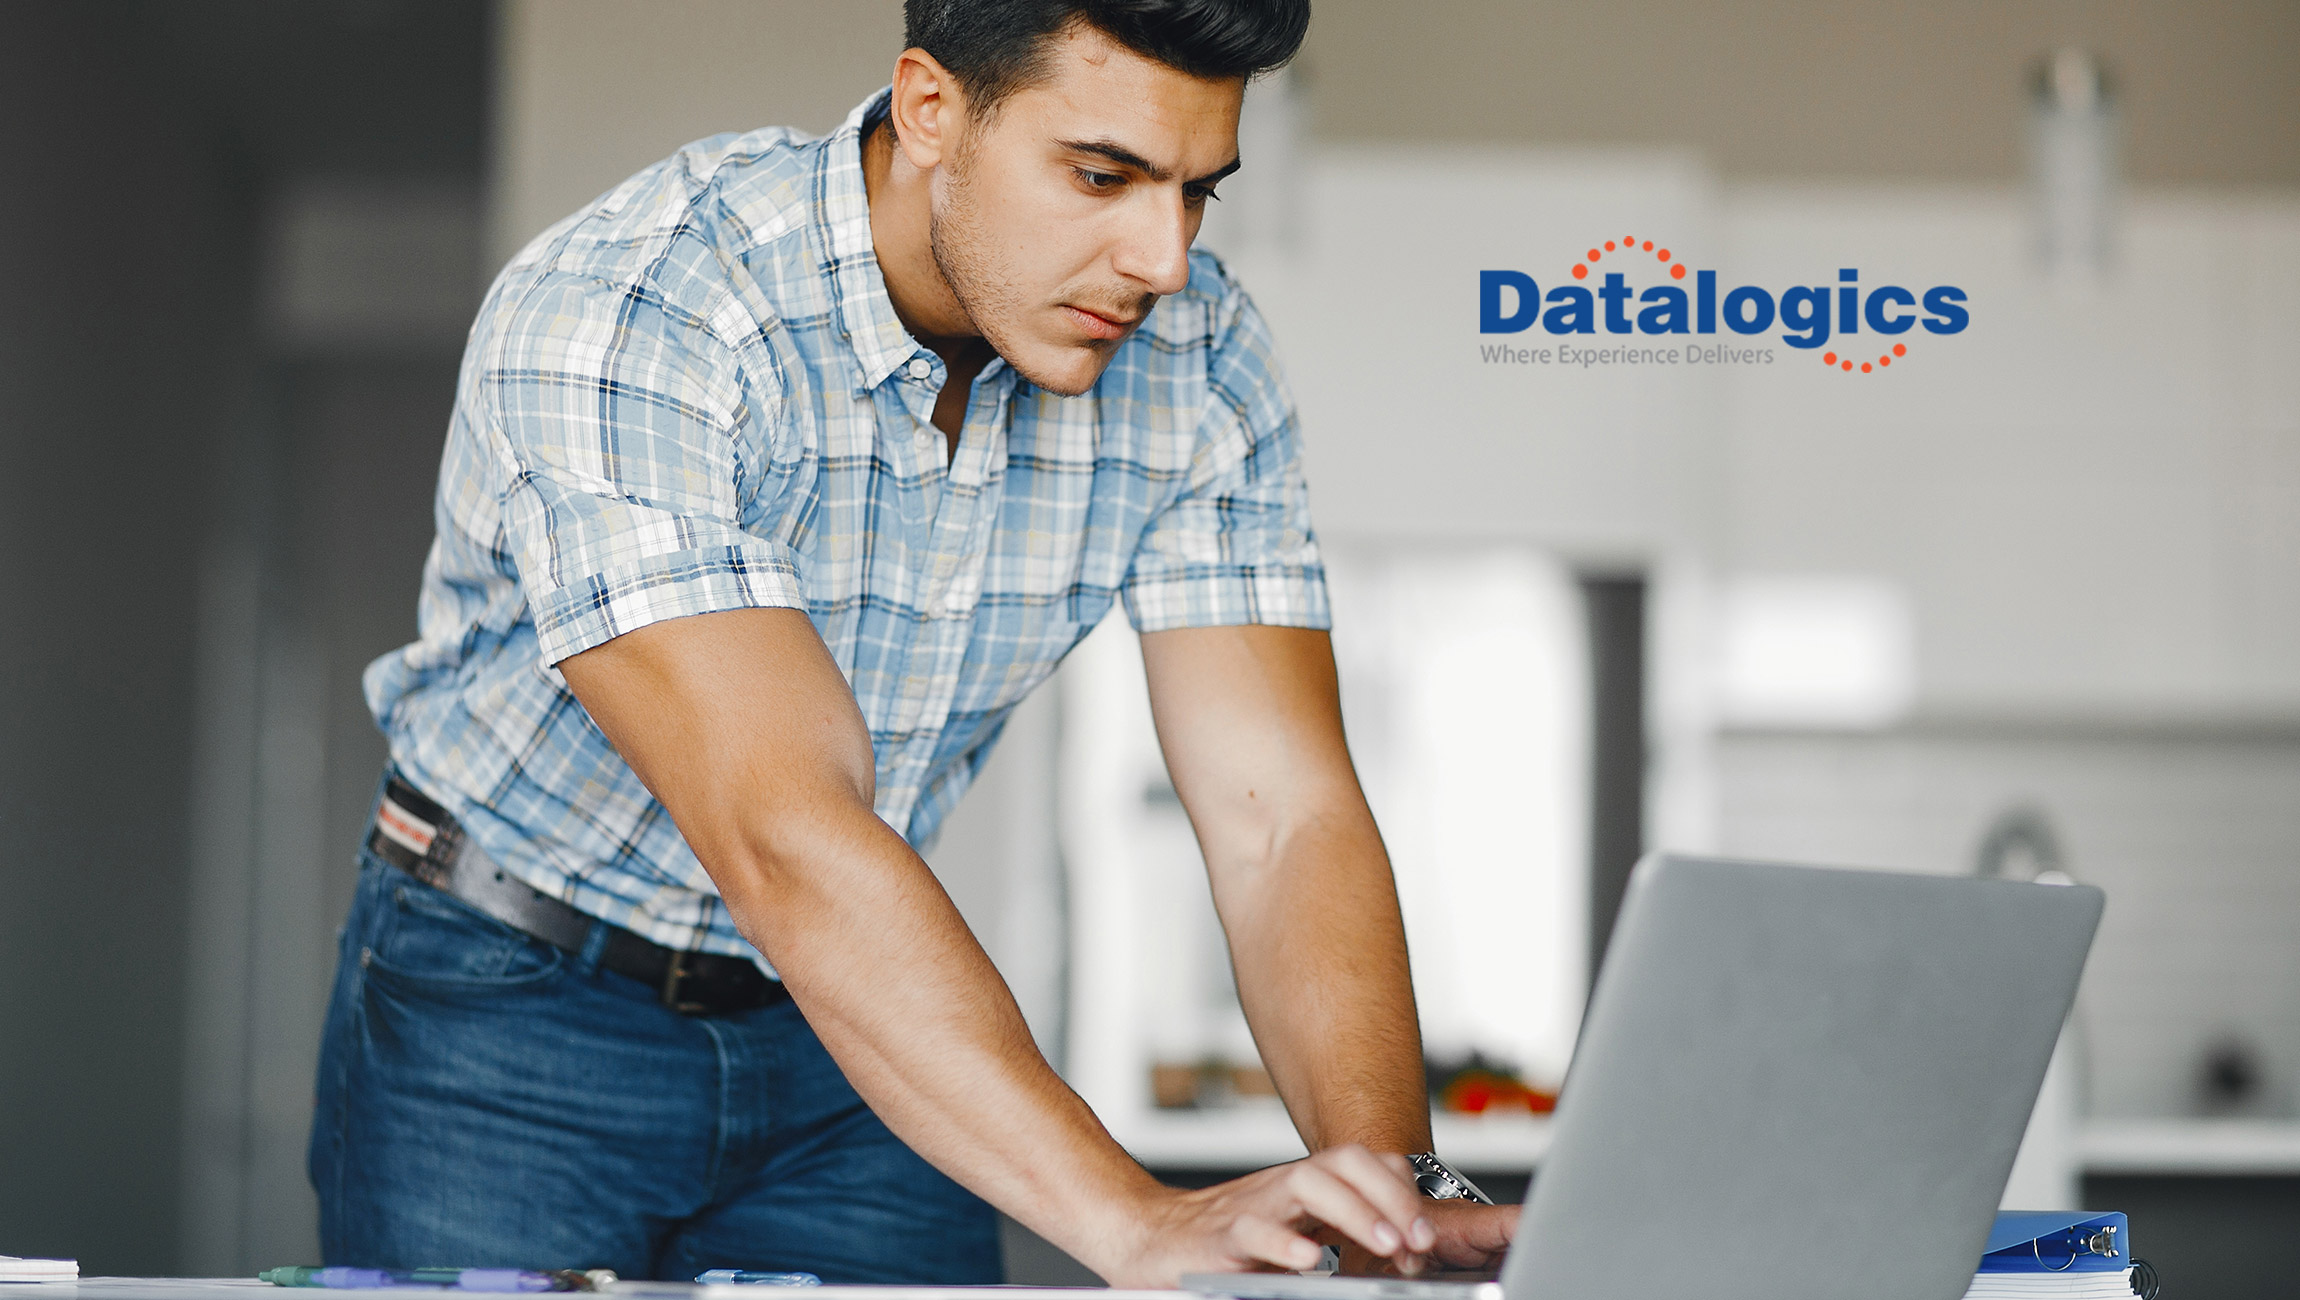 Quickly Convert Microsoft Office Documents, Images, and PostScript Files into PDFs with New FLIP2PDF Tool from Datalogics